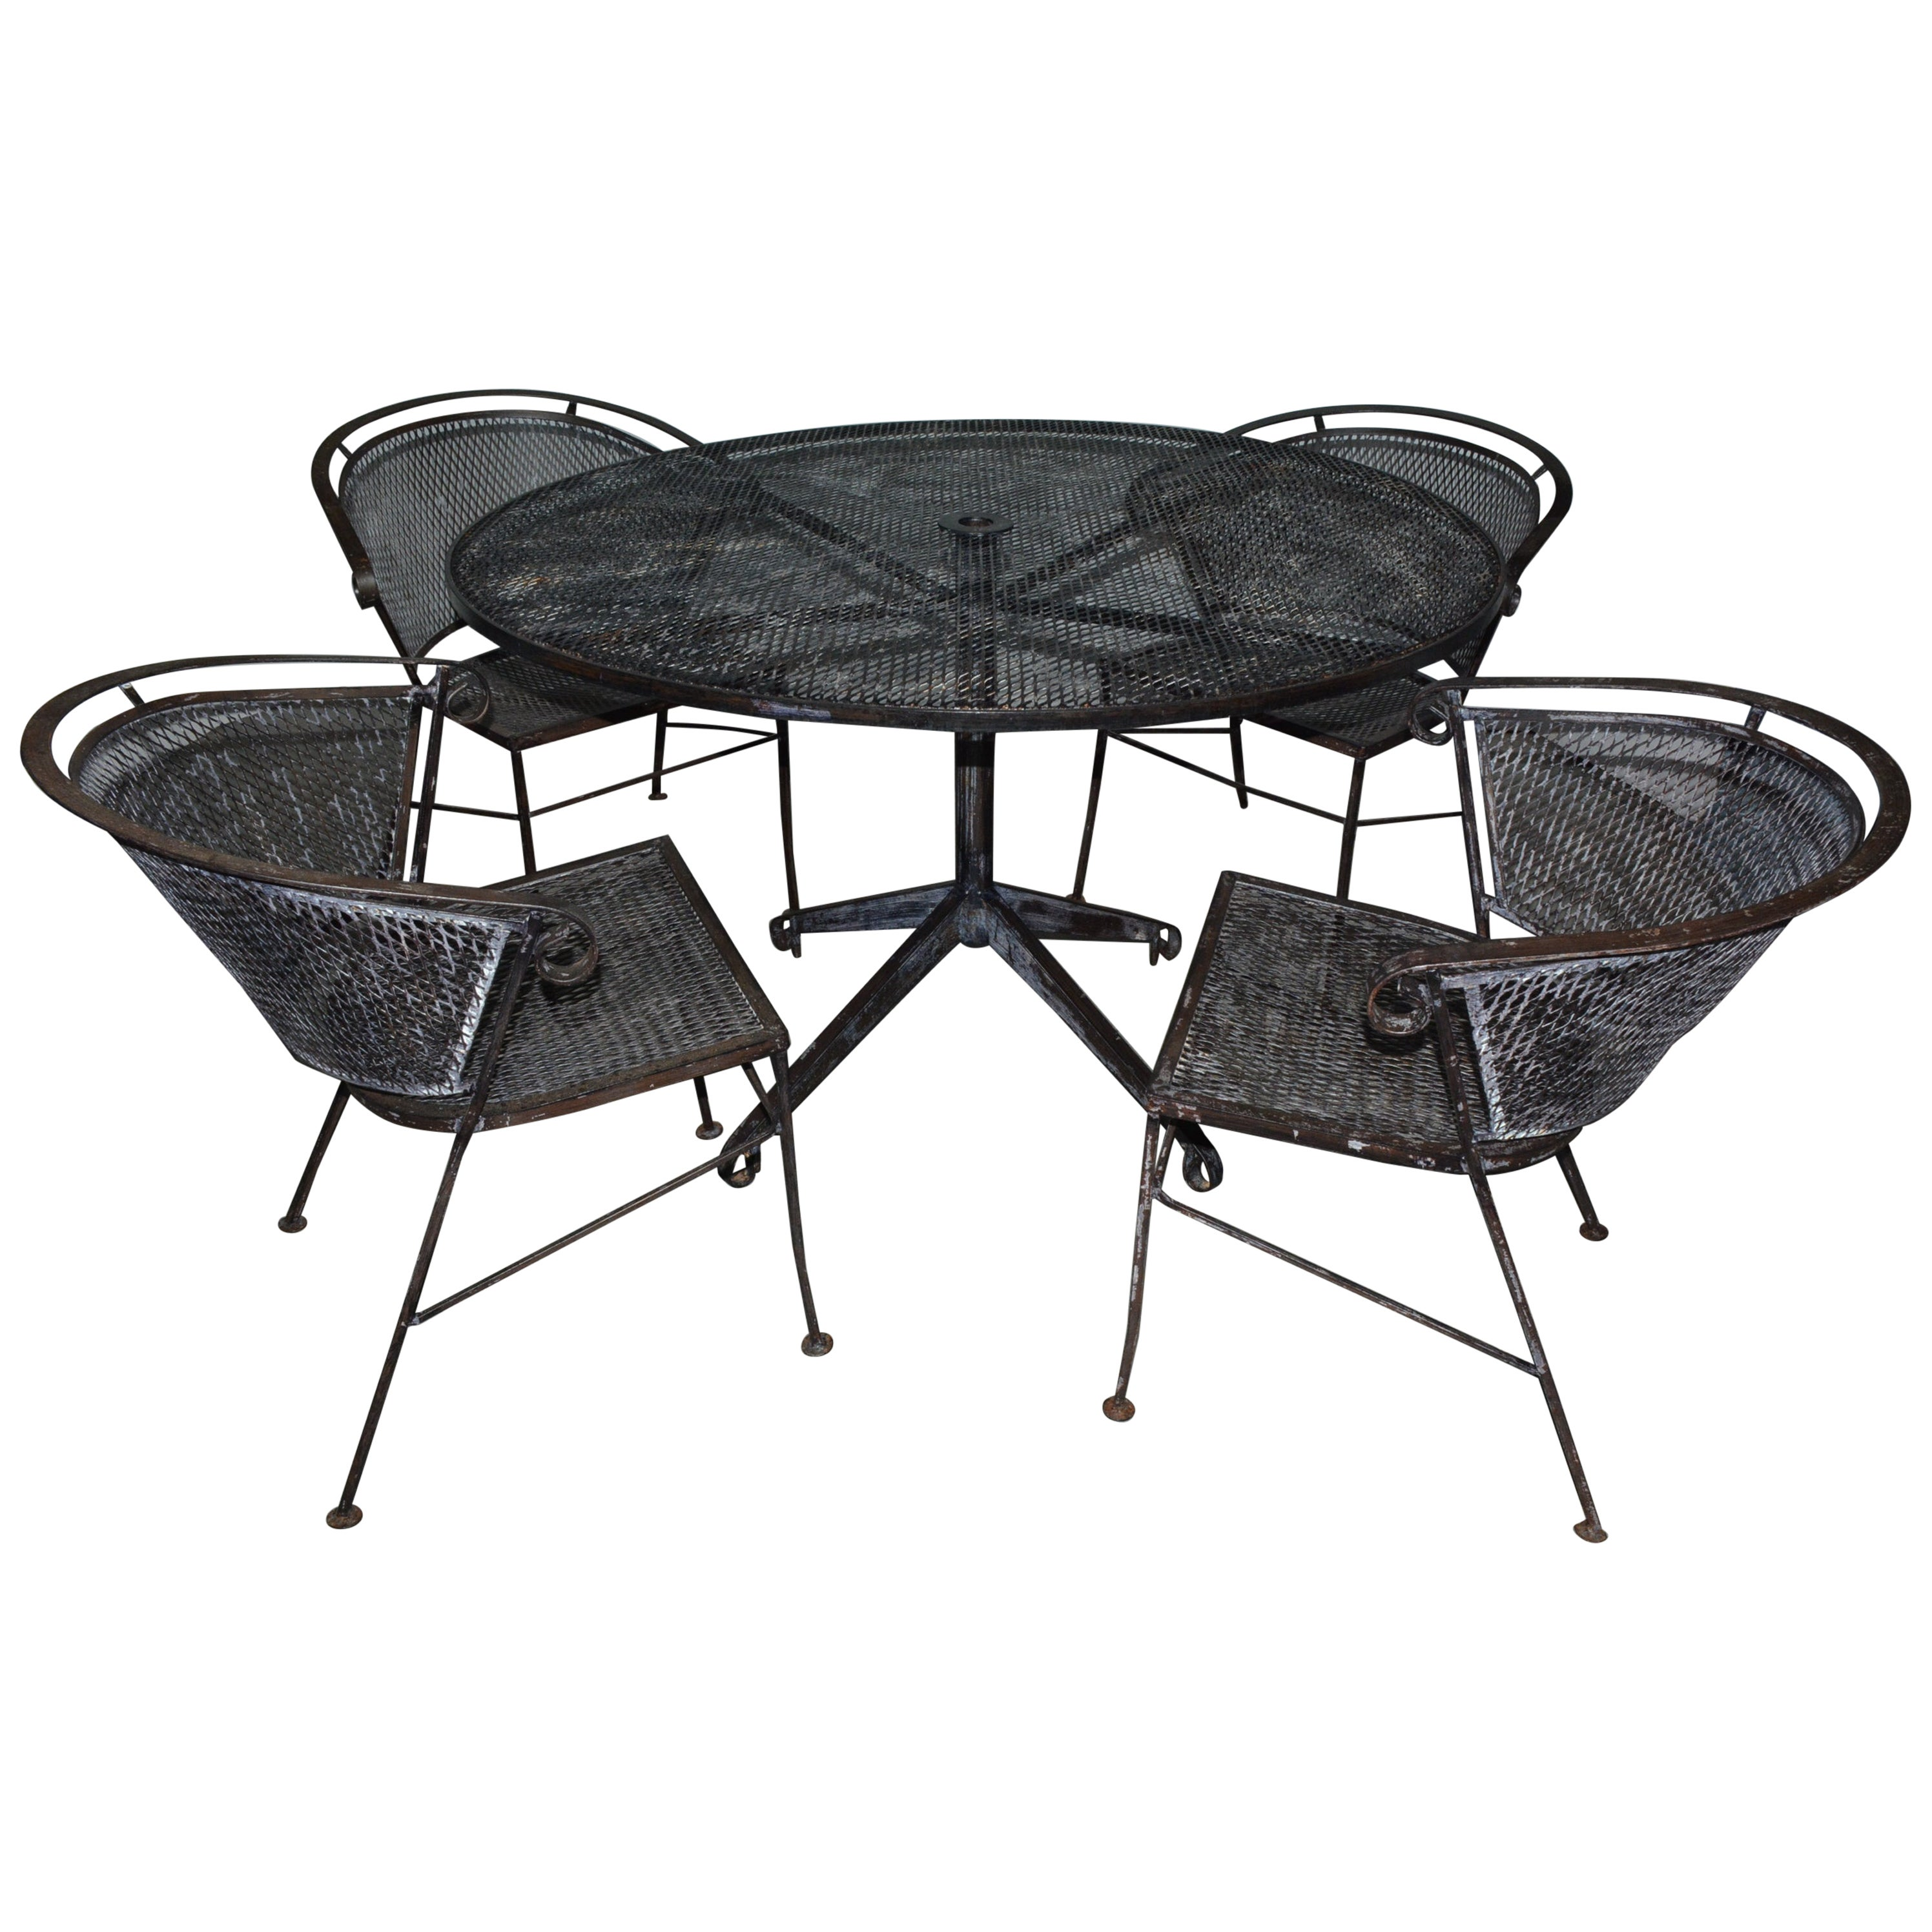 Set of 5 Round Patio Garden Table Dining Set